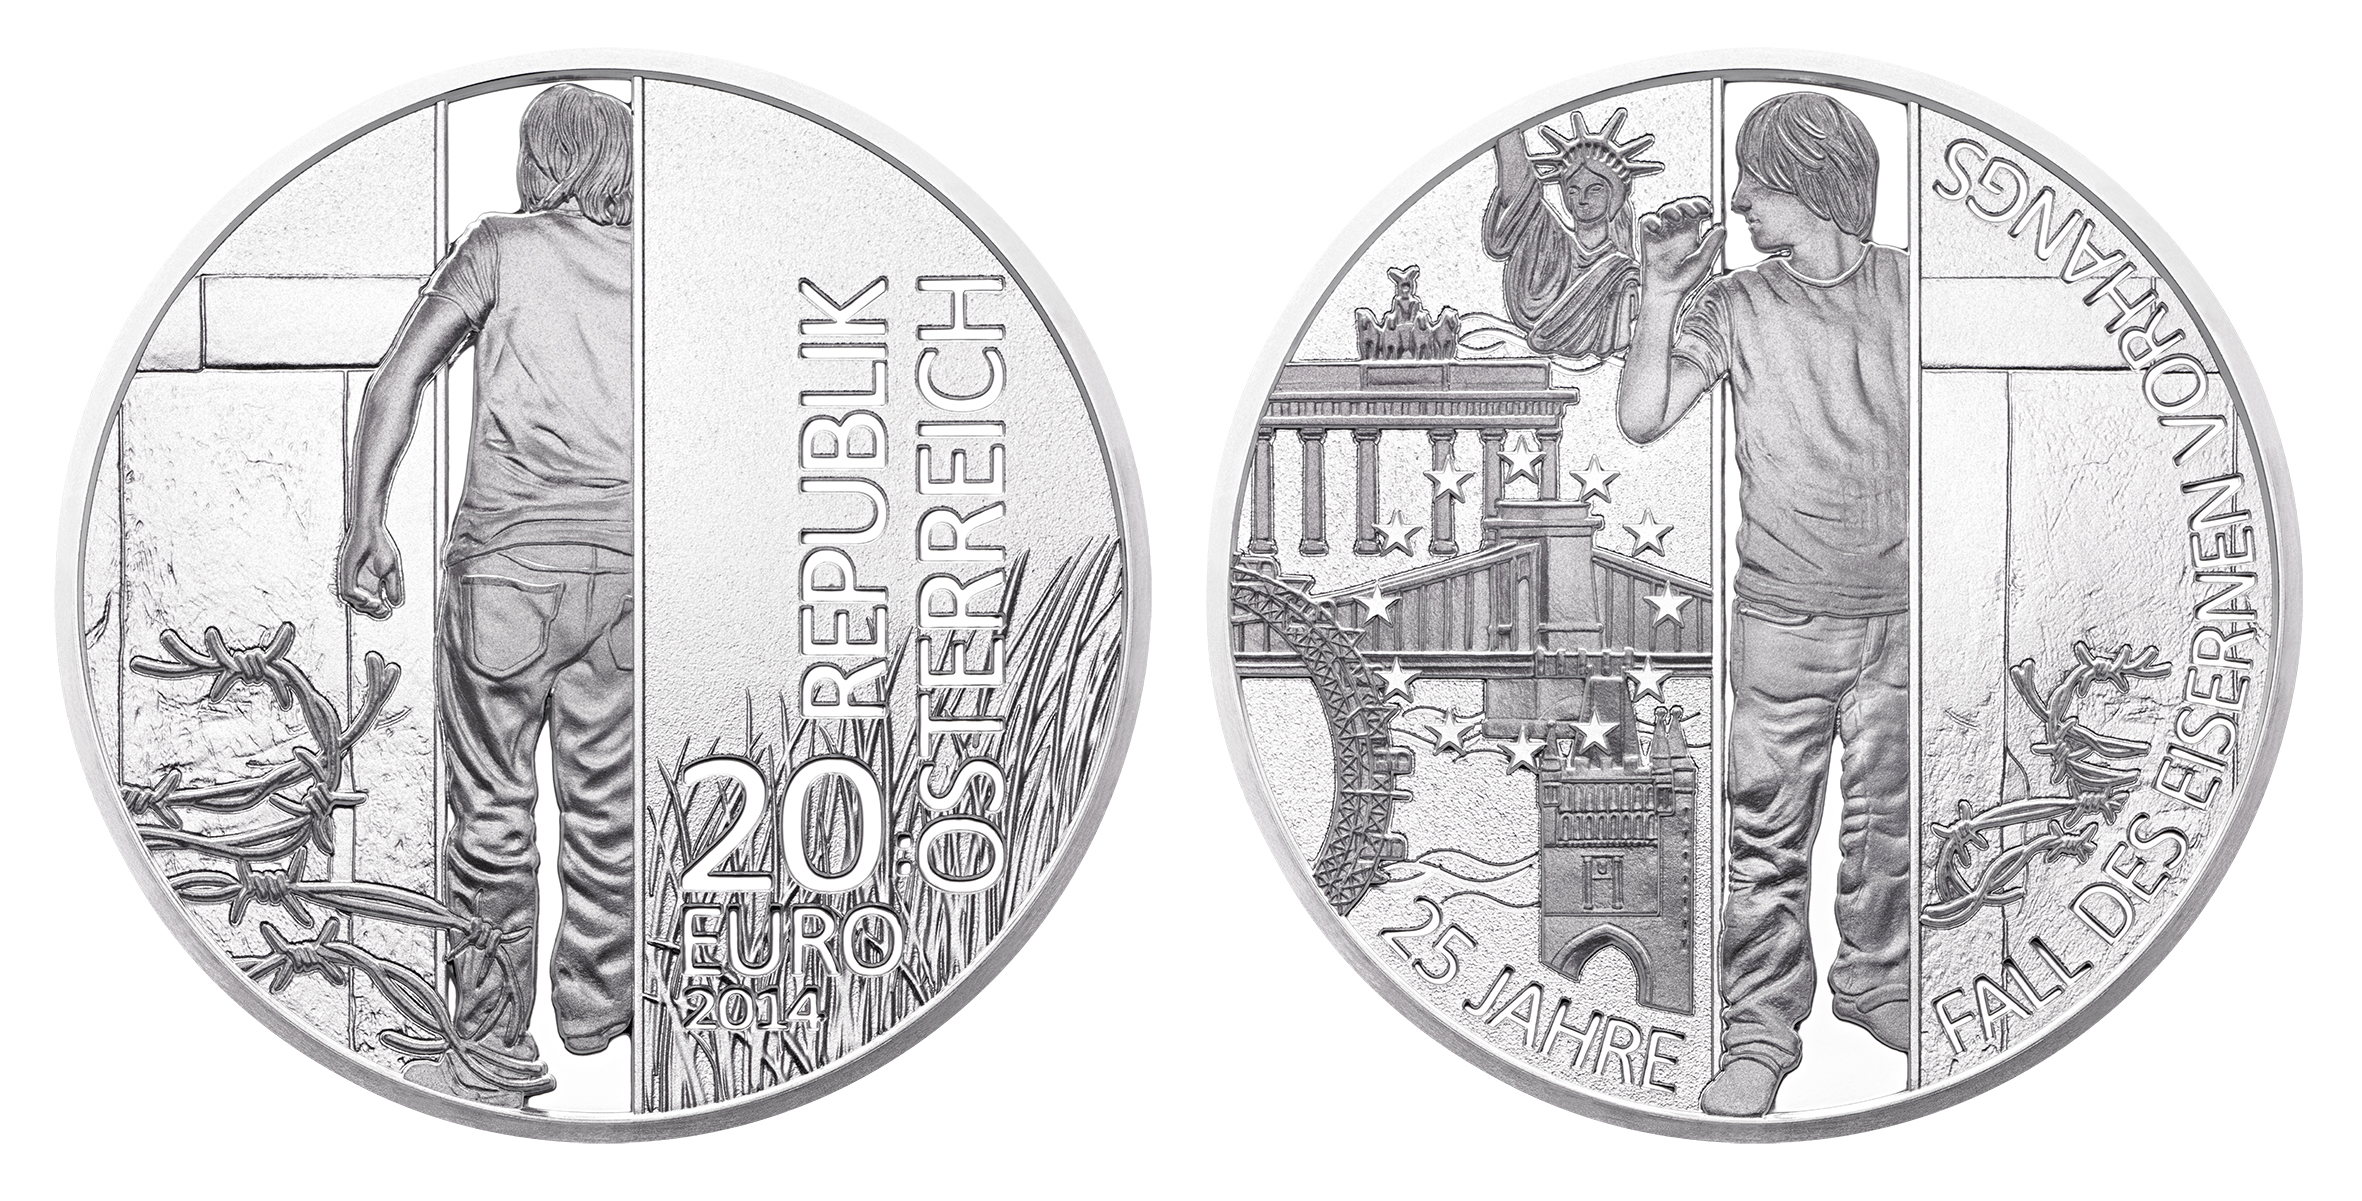 25TH ANNIVERSARY OF THE FALL OF THE IRON CURTAIN Picturing the decisive events associated with the collapse of the Berlin Wall, this ingenious and resonant silver coin celebrates the 25th anniversary of one of the key events in recent world history.